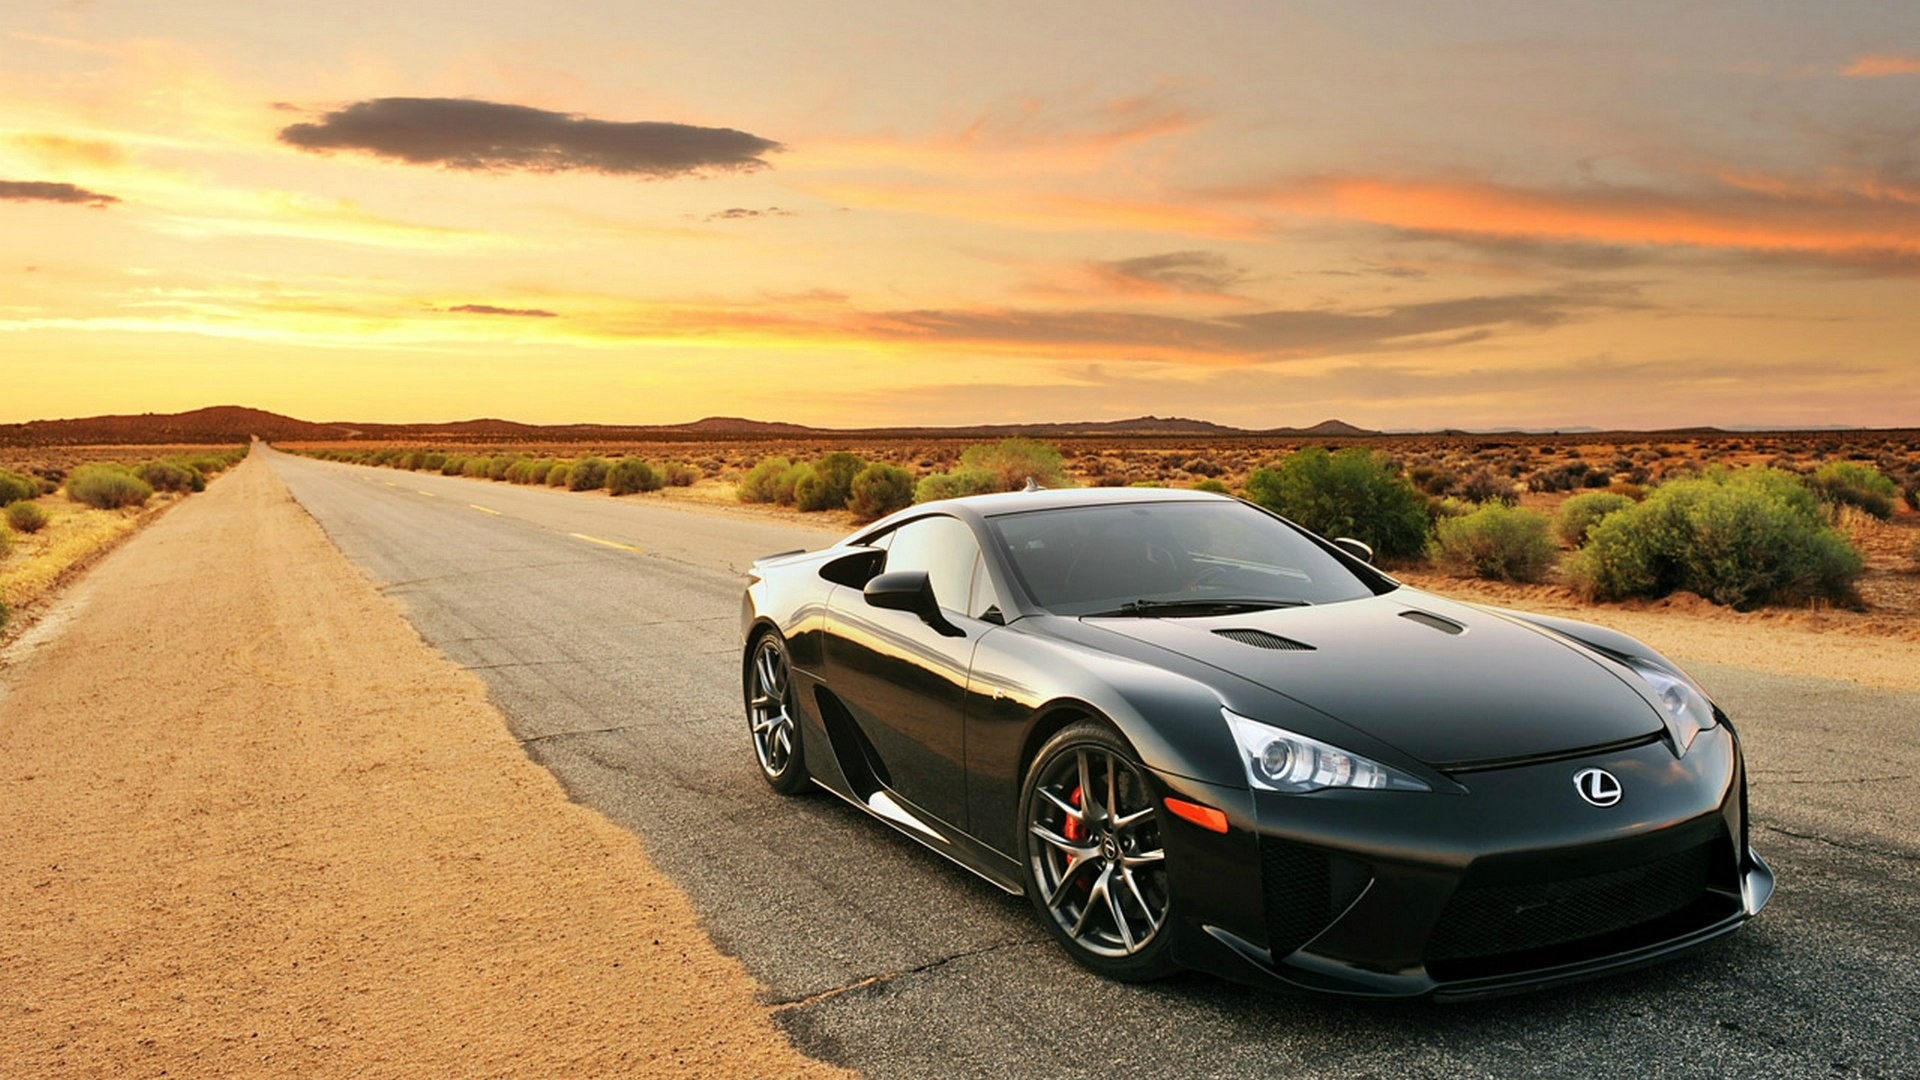 1920x1080 Black Lexus Lfa Desert Road Desktop Pc And Mac HD Wallpapers Download free images and photos [musssic.tk]